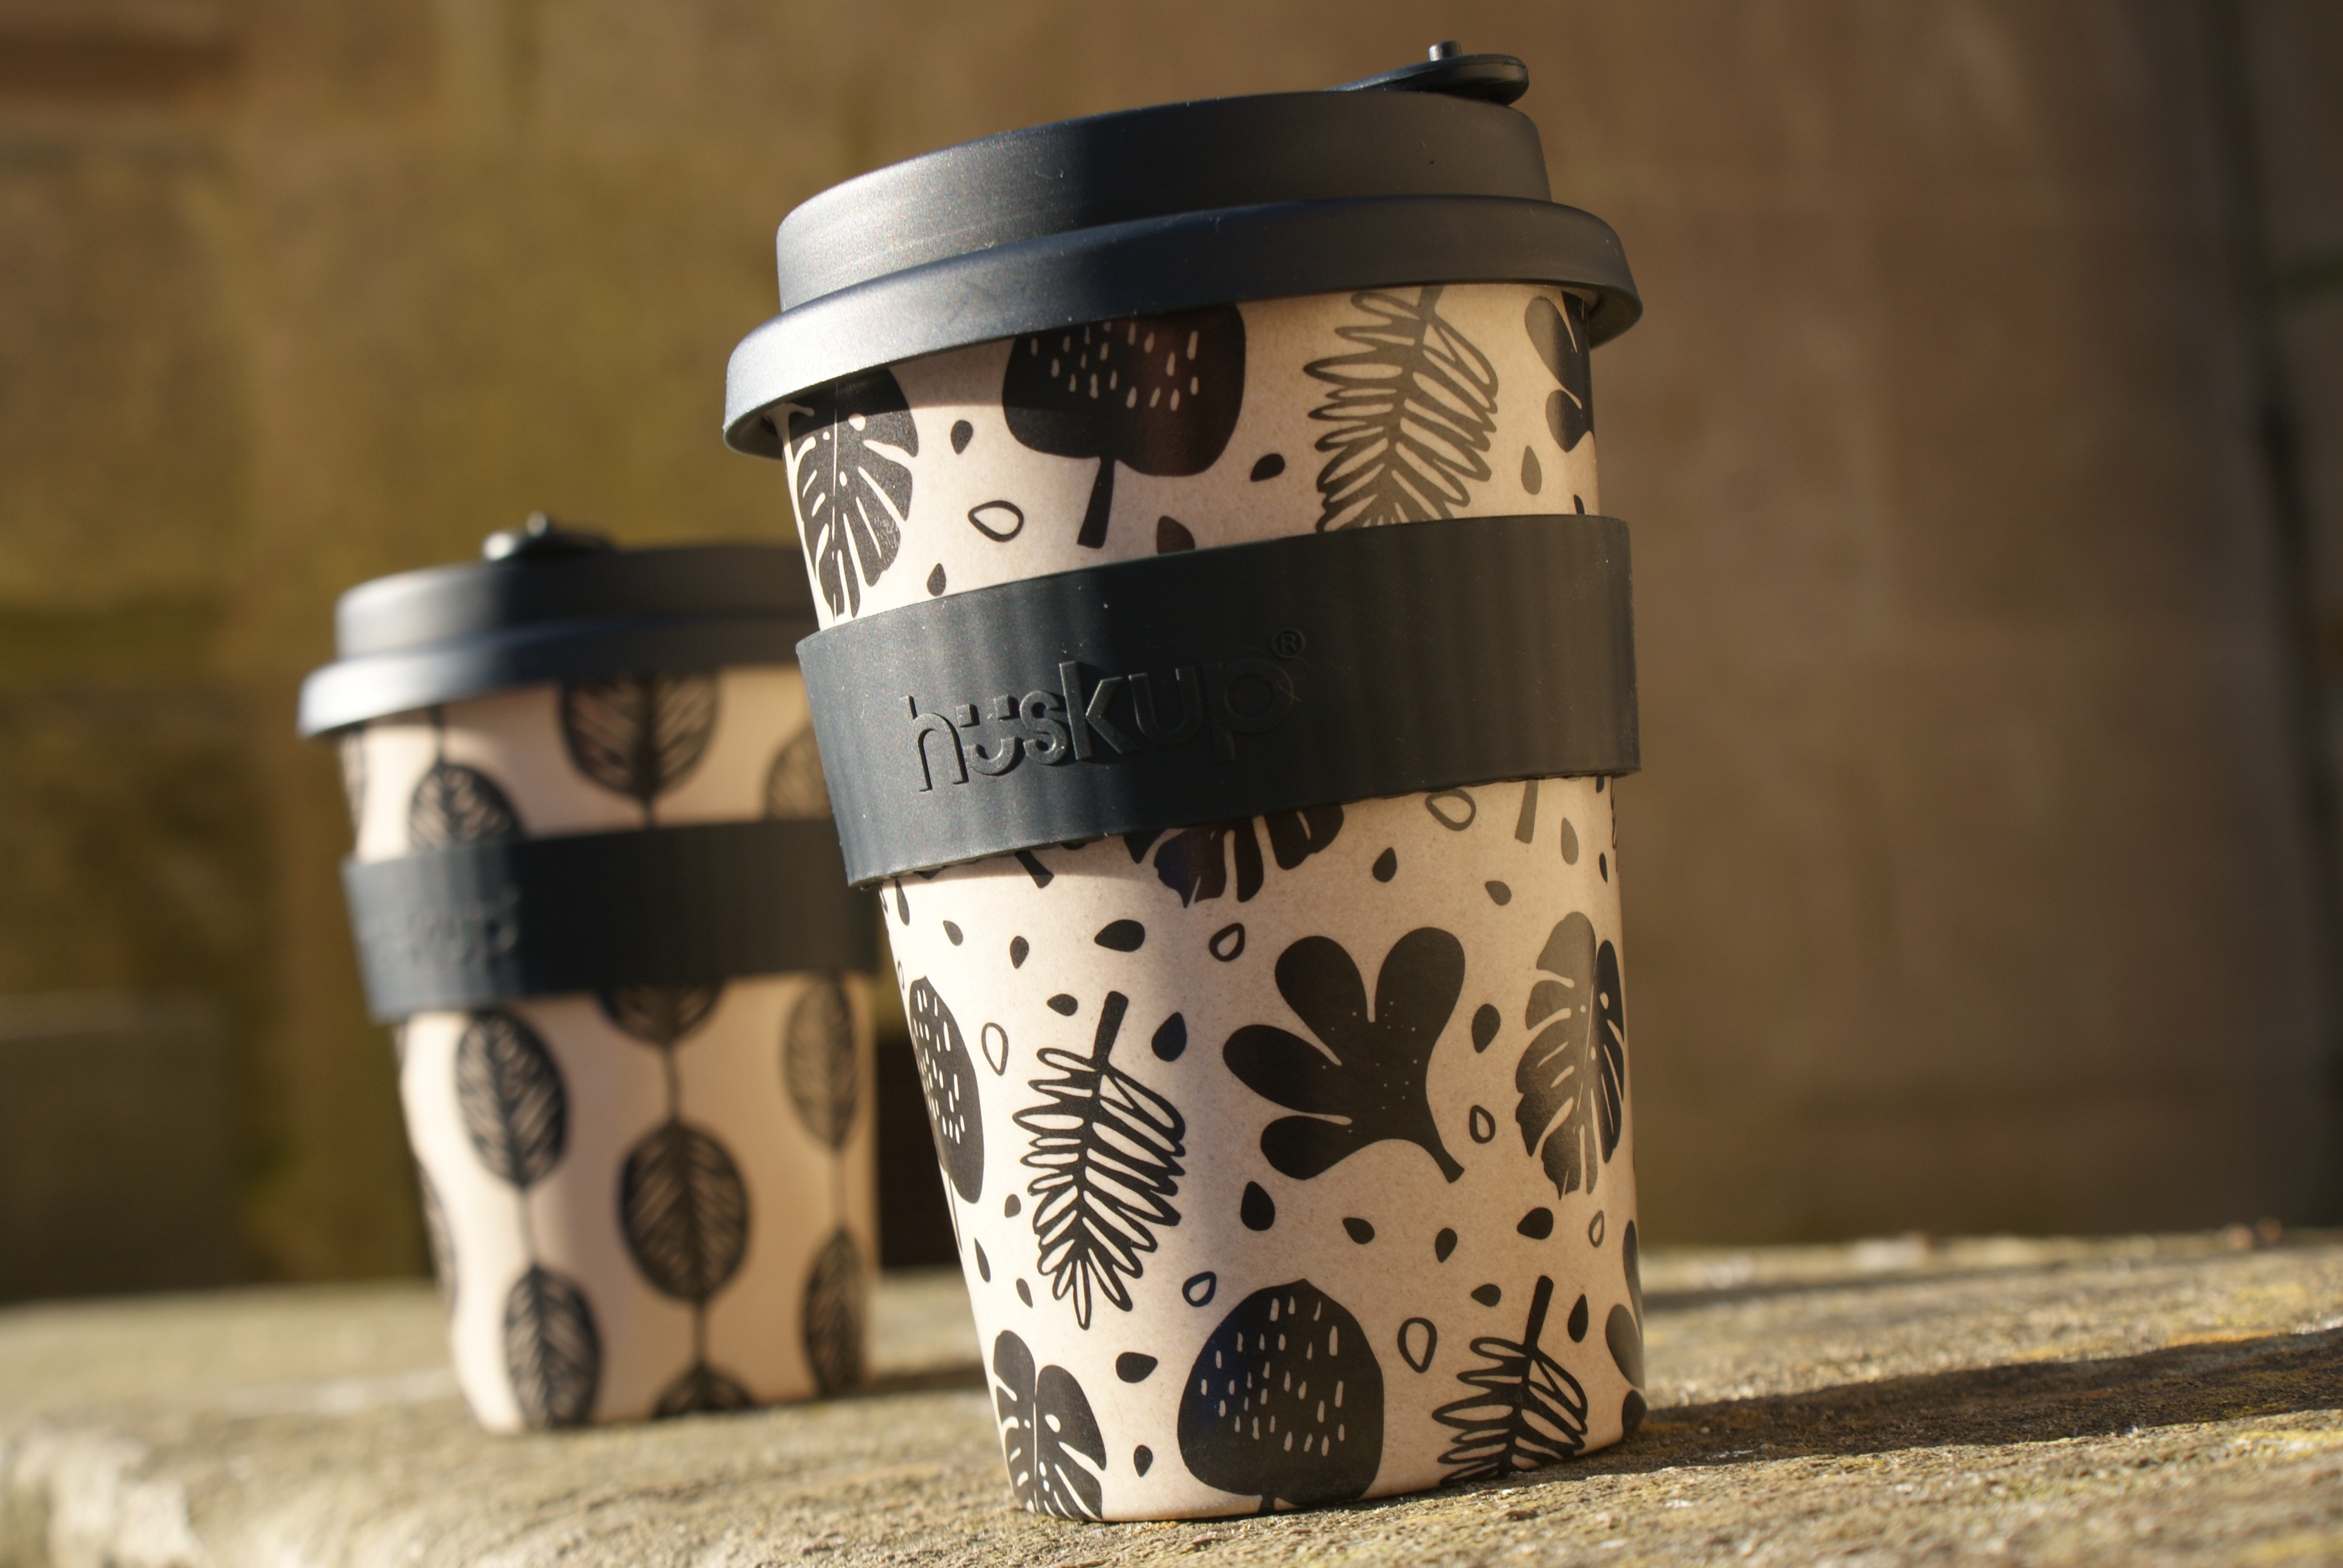 Two reusable cup huskups in the sun with black bands the one to the left has a black and brown leaf design and the one to the right has leaves and dots in different shapes and sizes the one on the right is placed closer to the camera